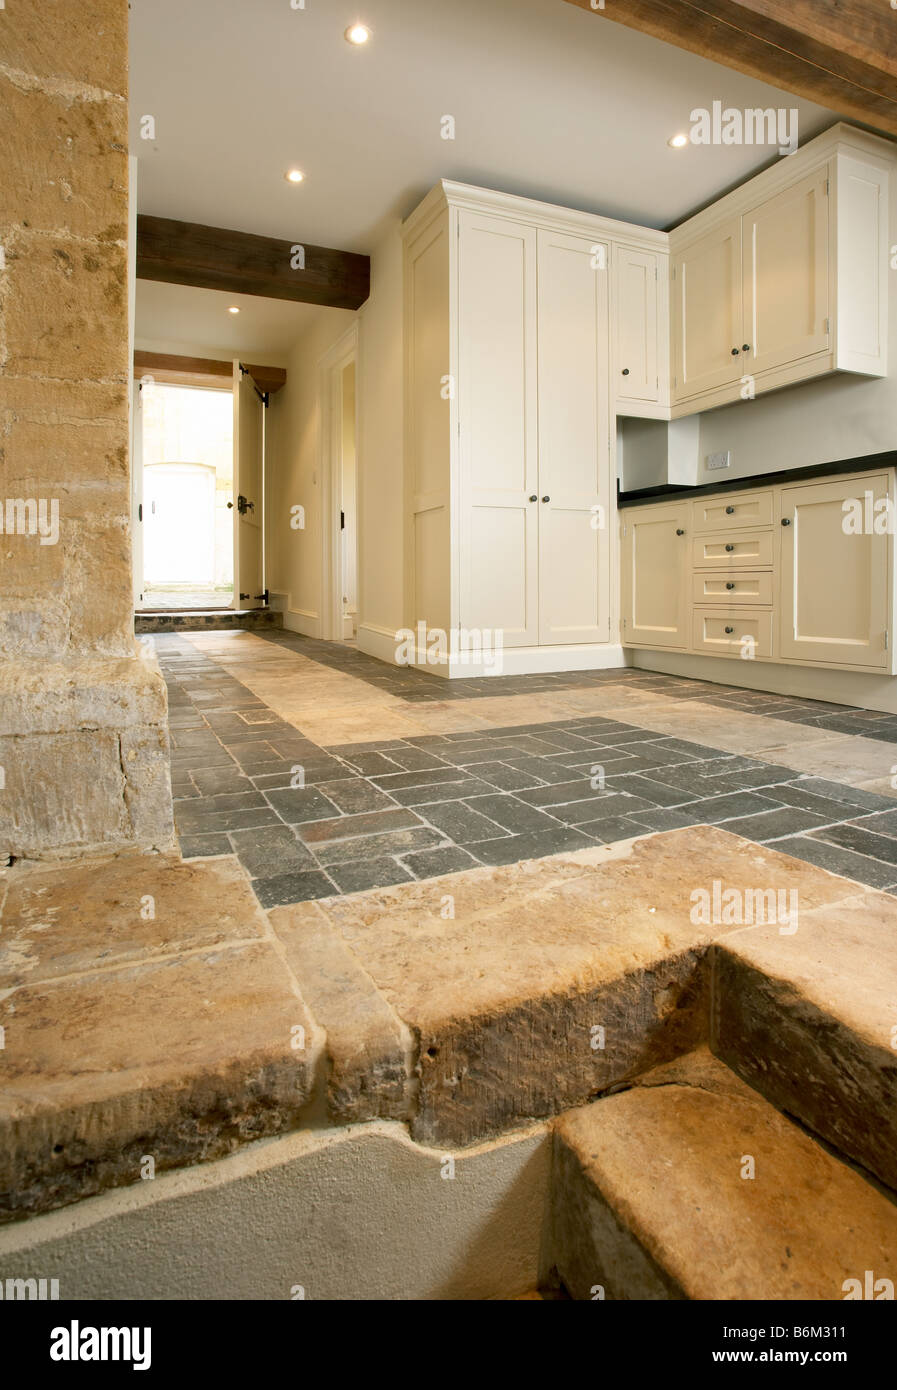 Farmhouse Brick Flooring Tile : New utility room kitchen in cotswold farmhouse with stone